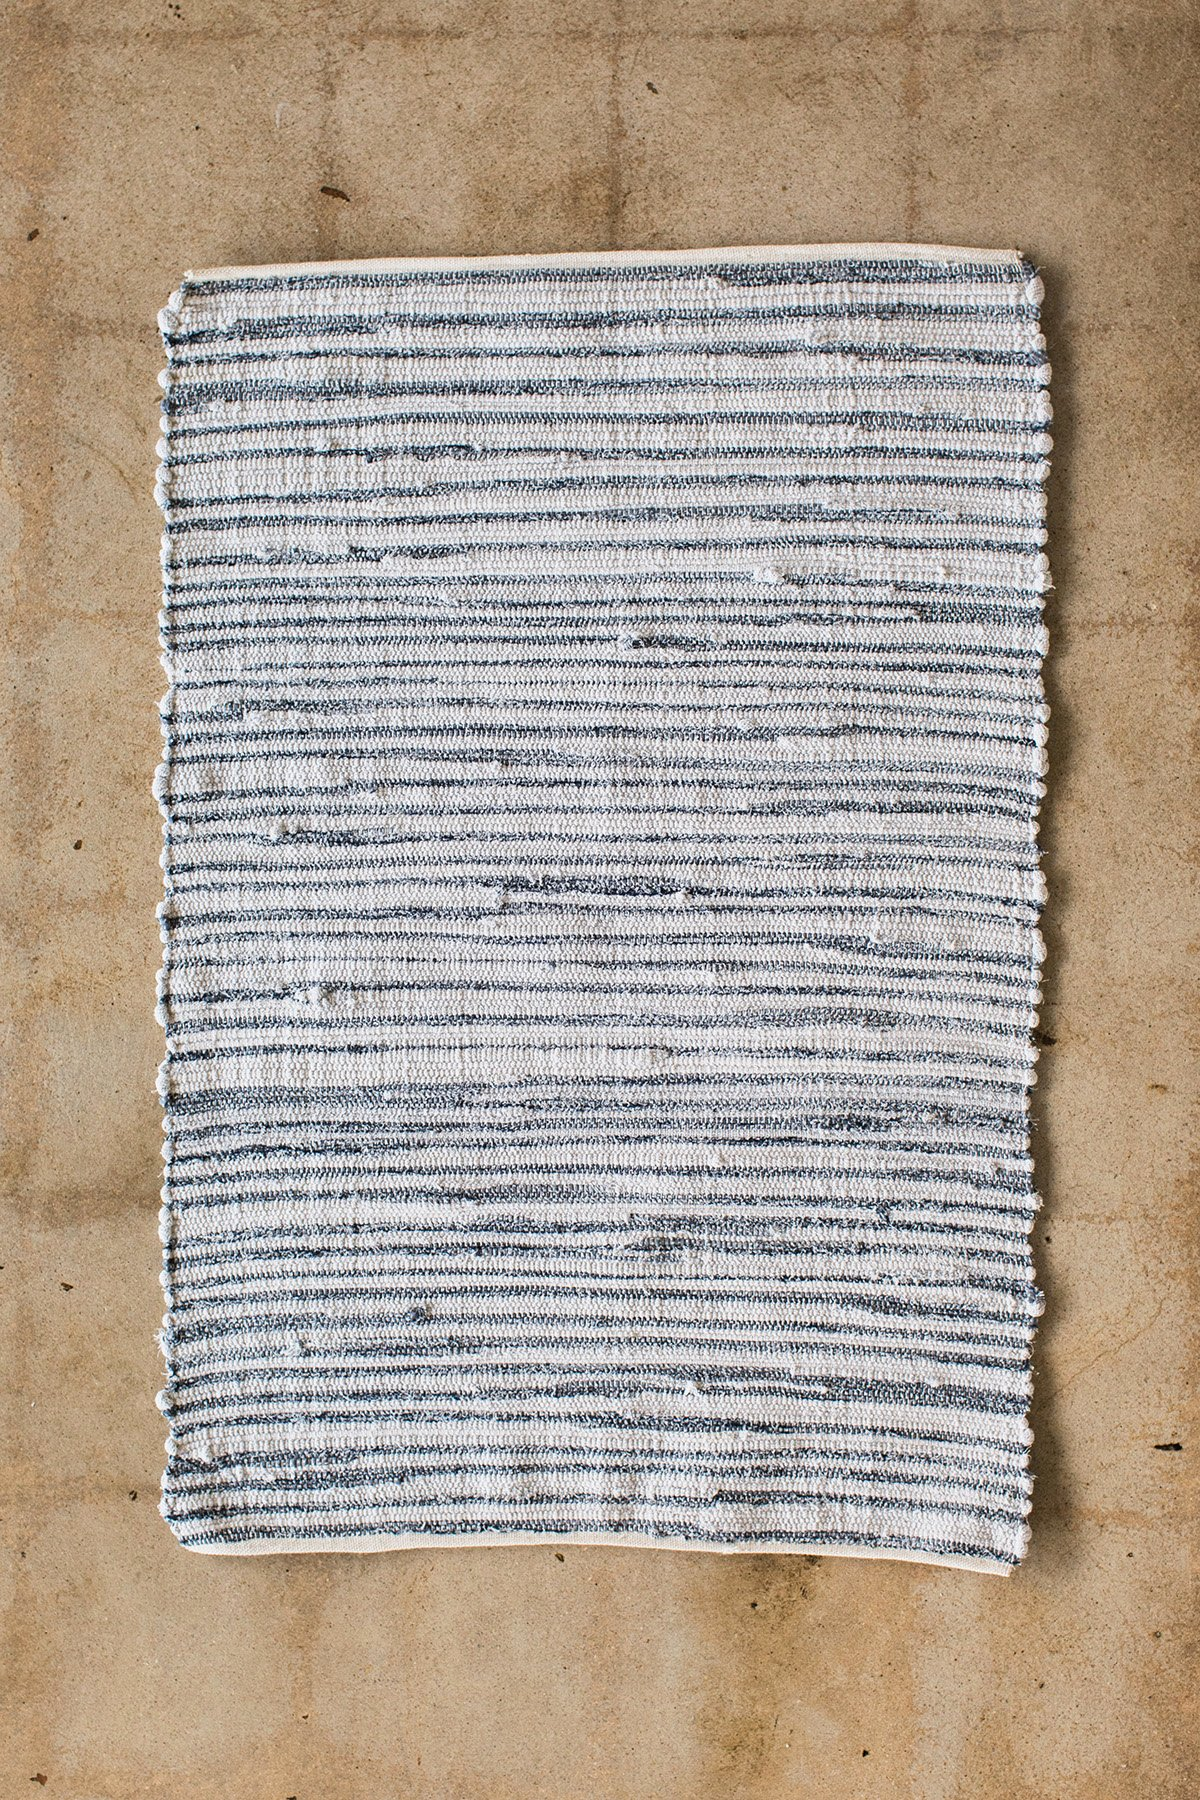 Willaby Hand-Loomed Rug No. 7 - Willaby makes these beautiful rugs from the leftover bolts of fabric used in their children's clothing line. No electricity is used in their production,What a gorgeous way to reduce waste and create such practical cozy places for our feet to land!$85.00 - 775.00